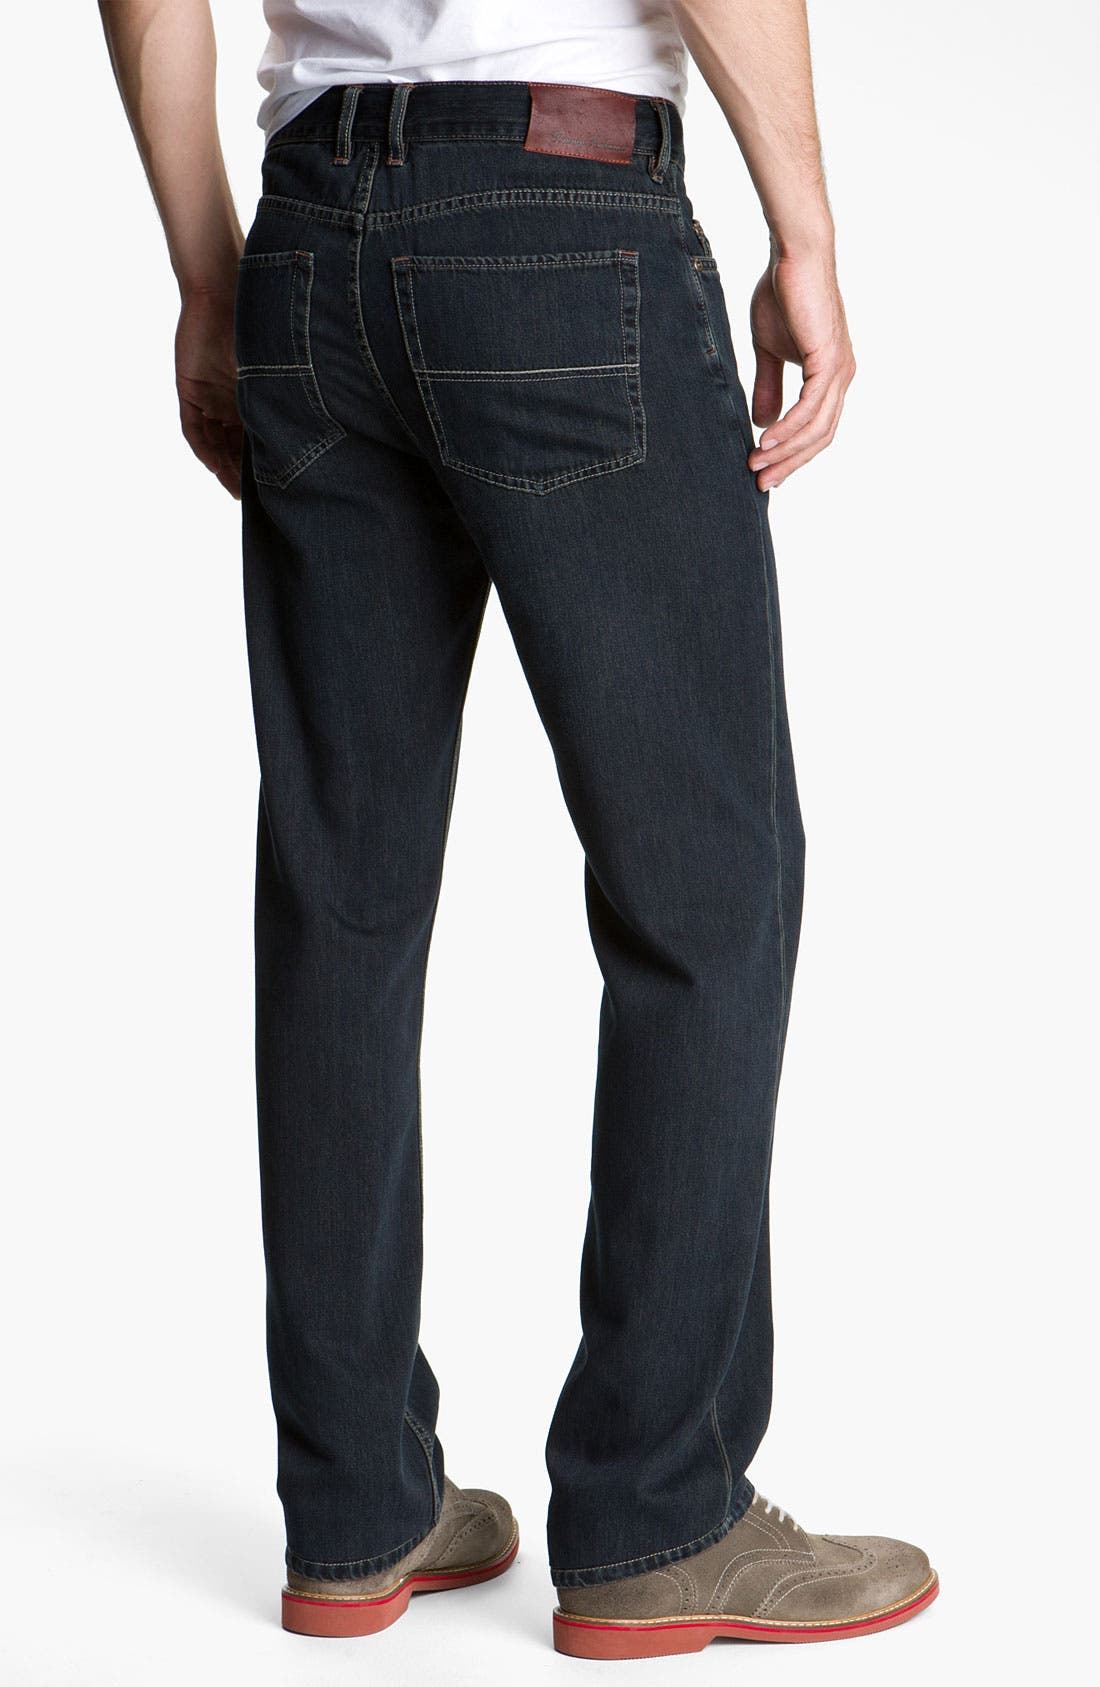 Alternate Image 1 Selected - Tommy Bahama Denim 'Standard Island Ease' Straight Leg Jeans (Blue Black Overdye)